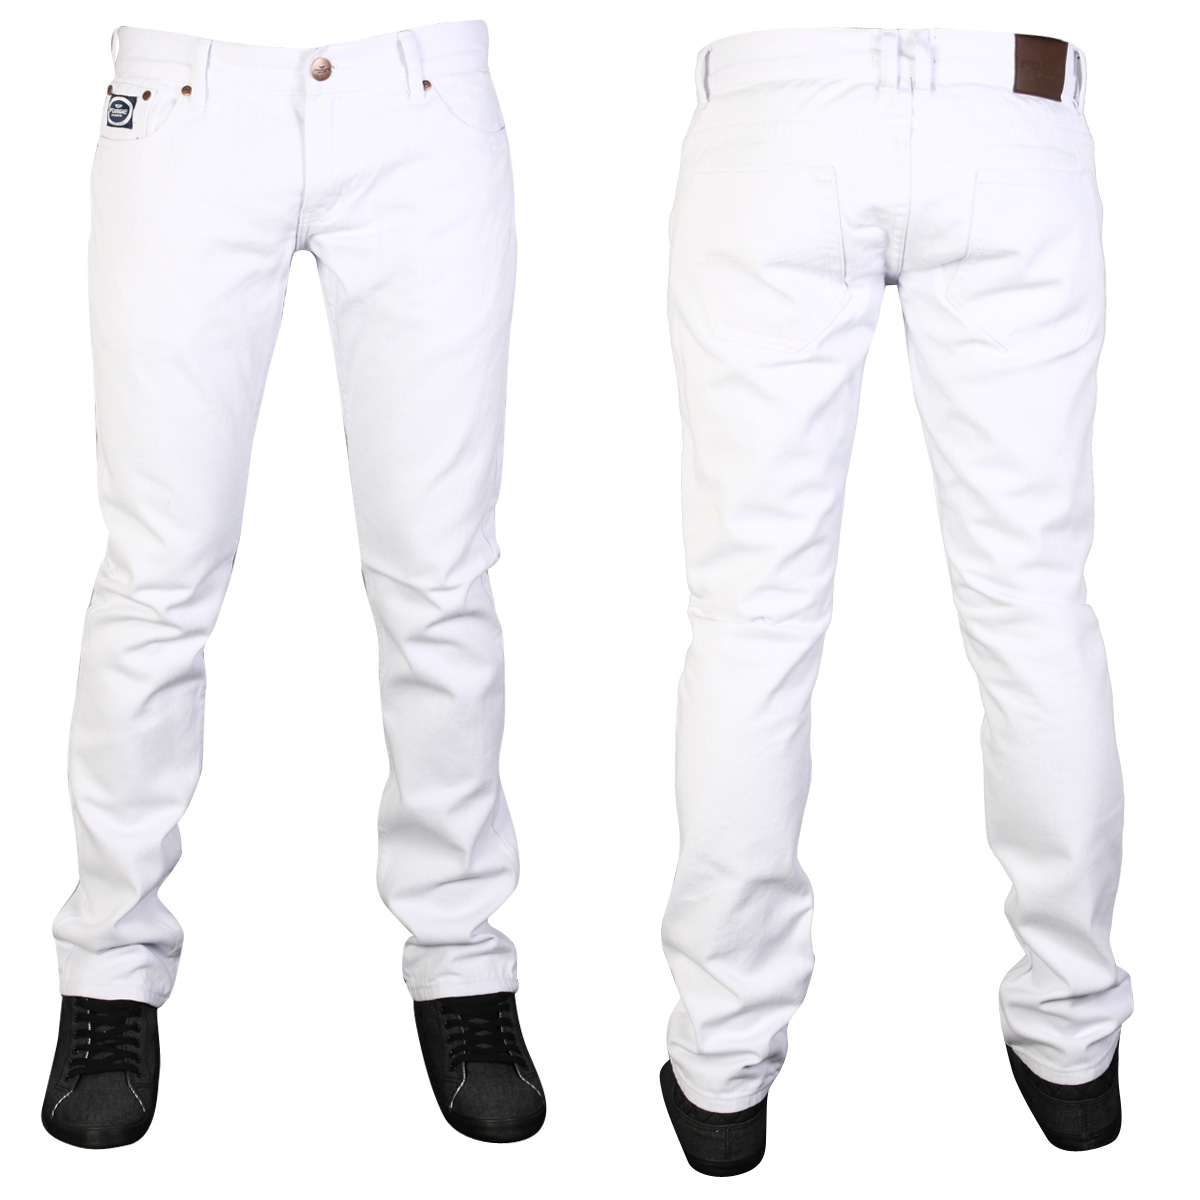 NEW-MENS-FORGE-BY-KAM-F102-DESIGNER-SKINNY-FIT-DENIM-JEANS-ALL-WAIST-LEG-SIZES